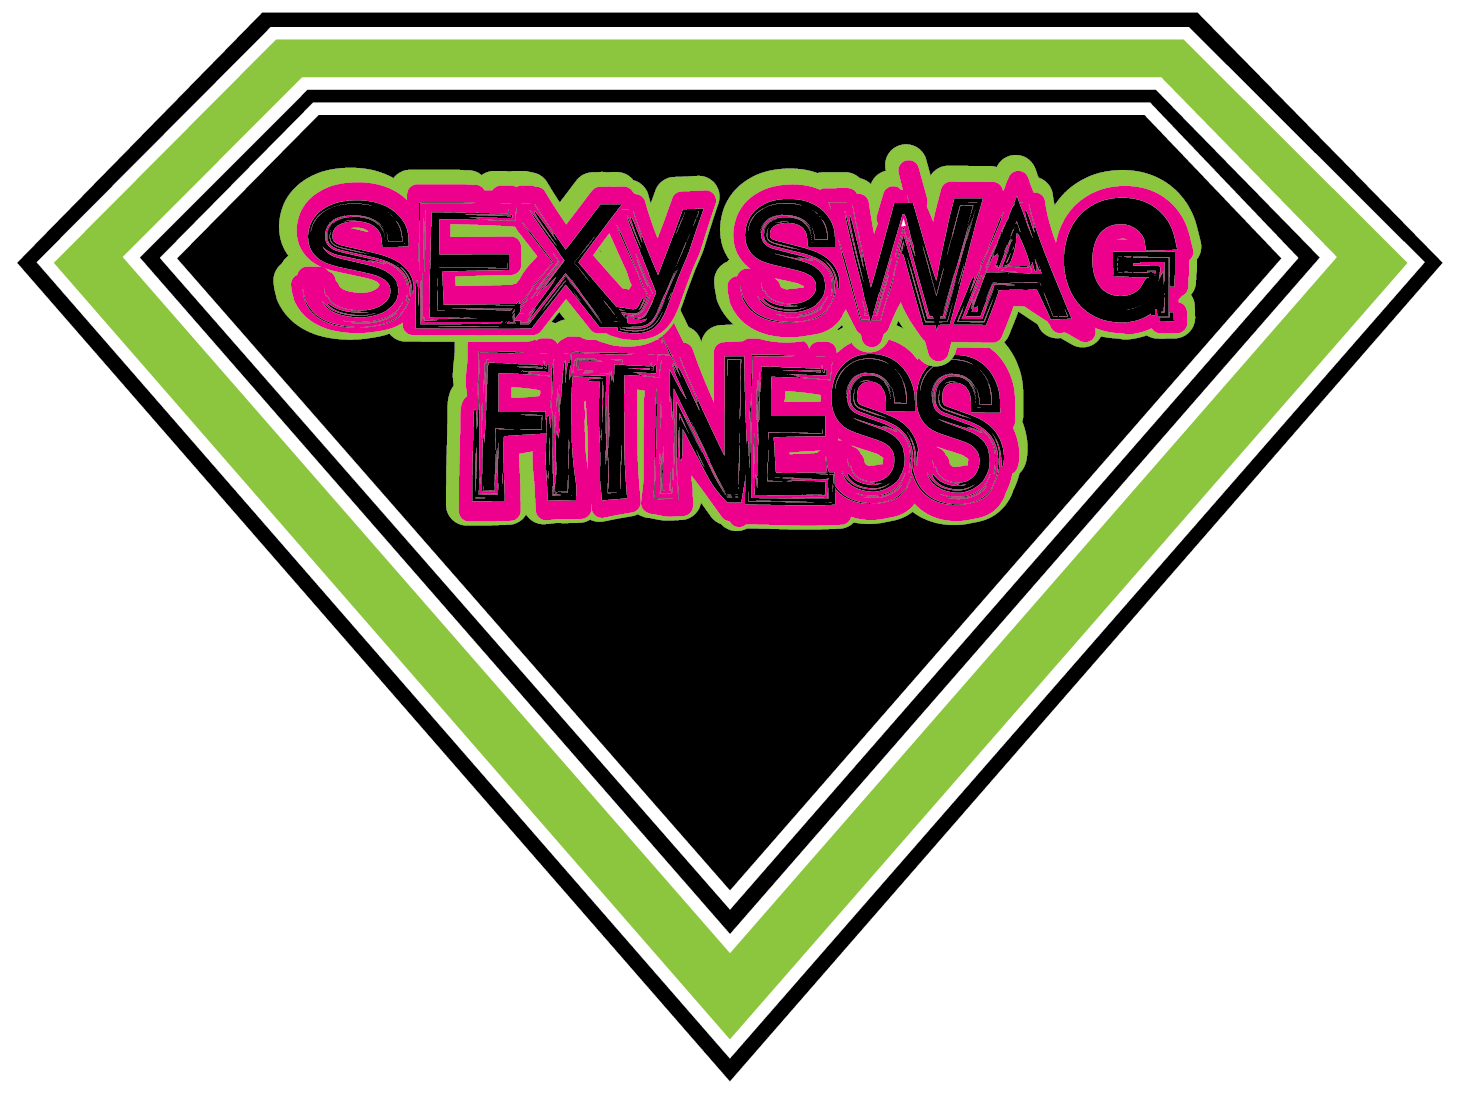 SexySwagFitness.png